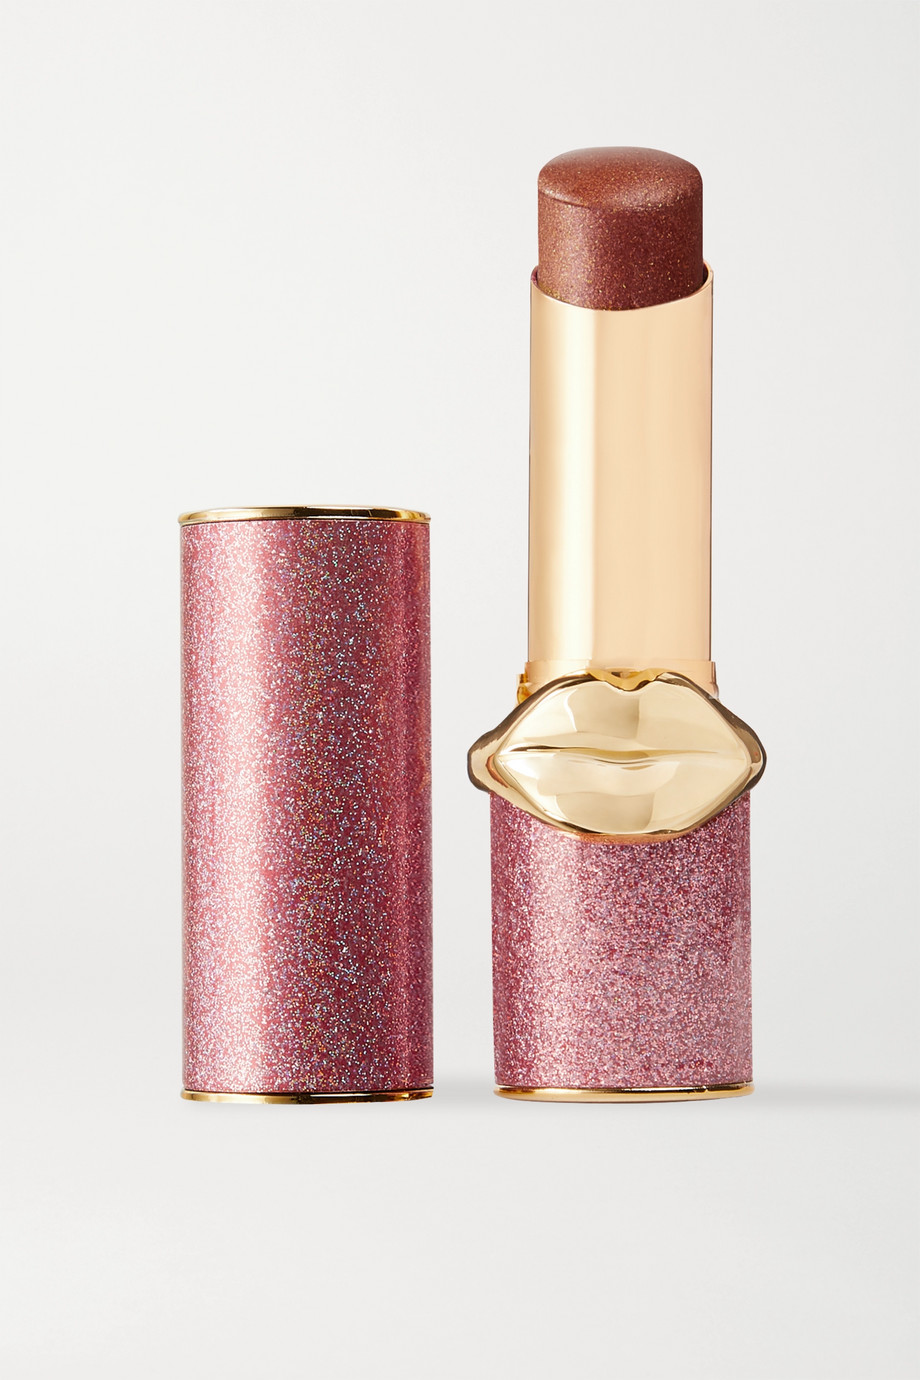 Pat McGrath Labs Lip Fetish Astral Lip Balm - Bronze